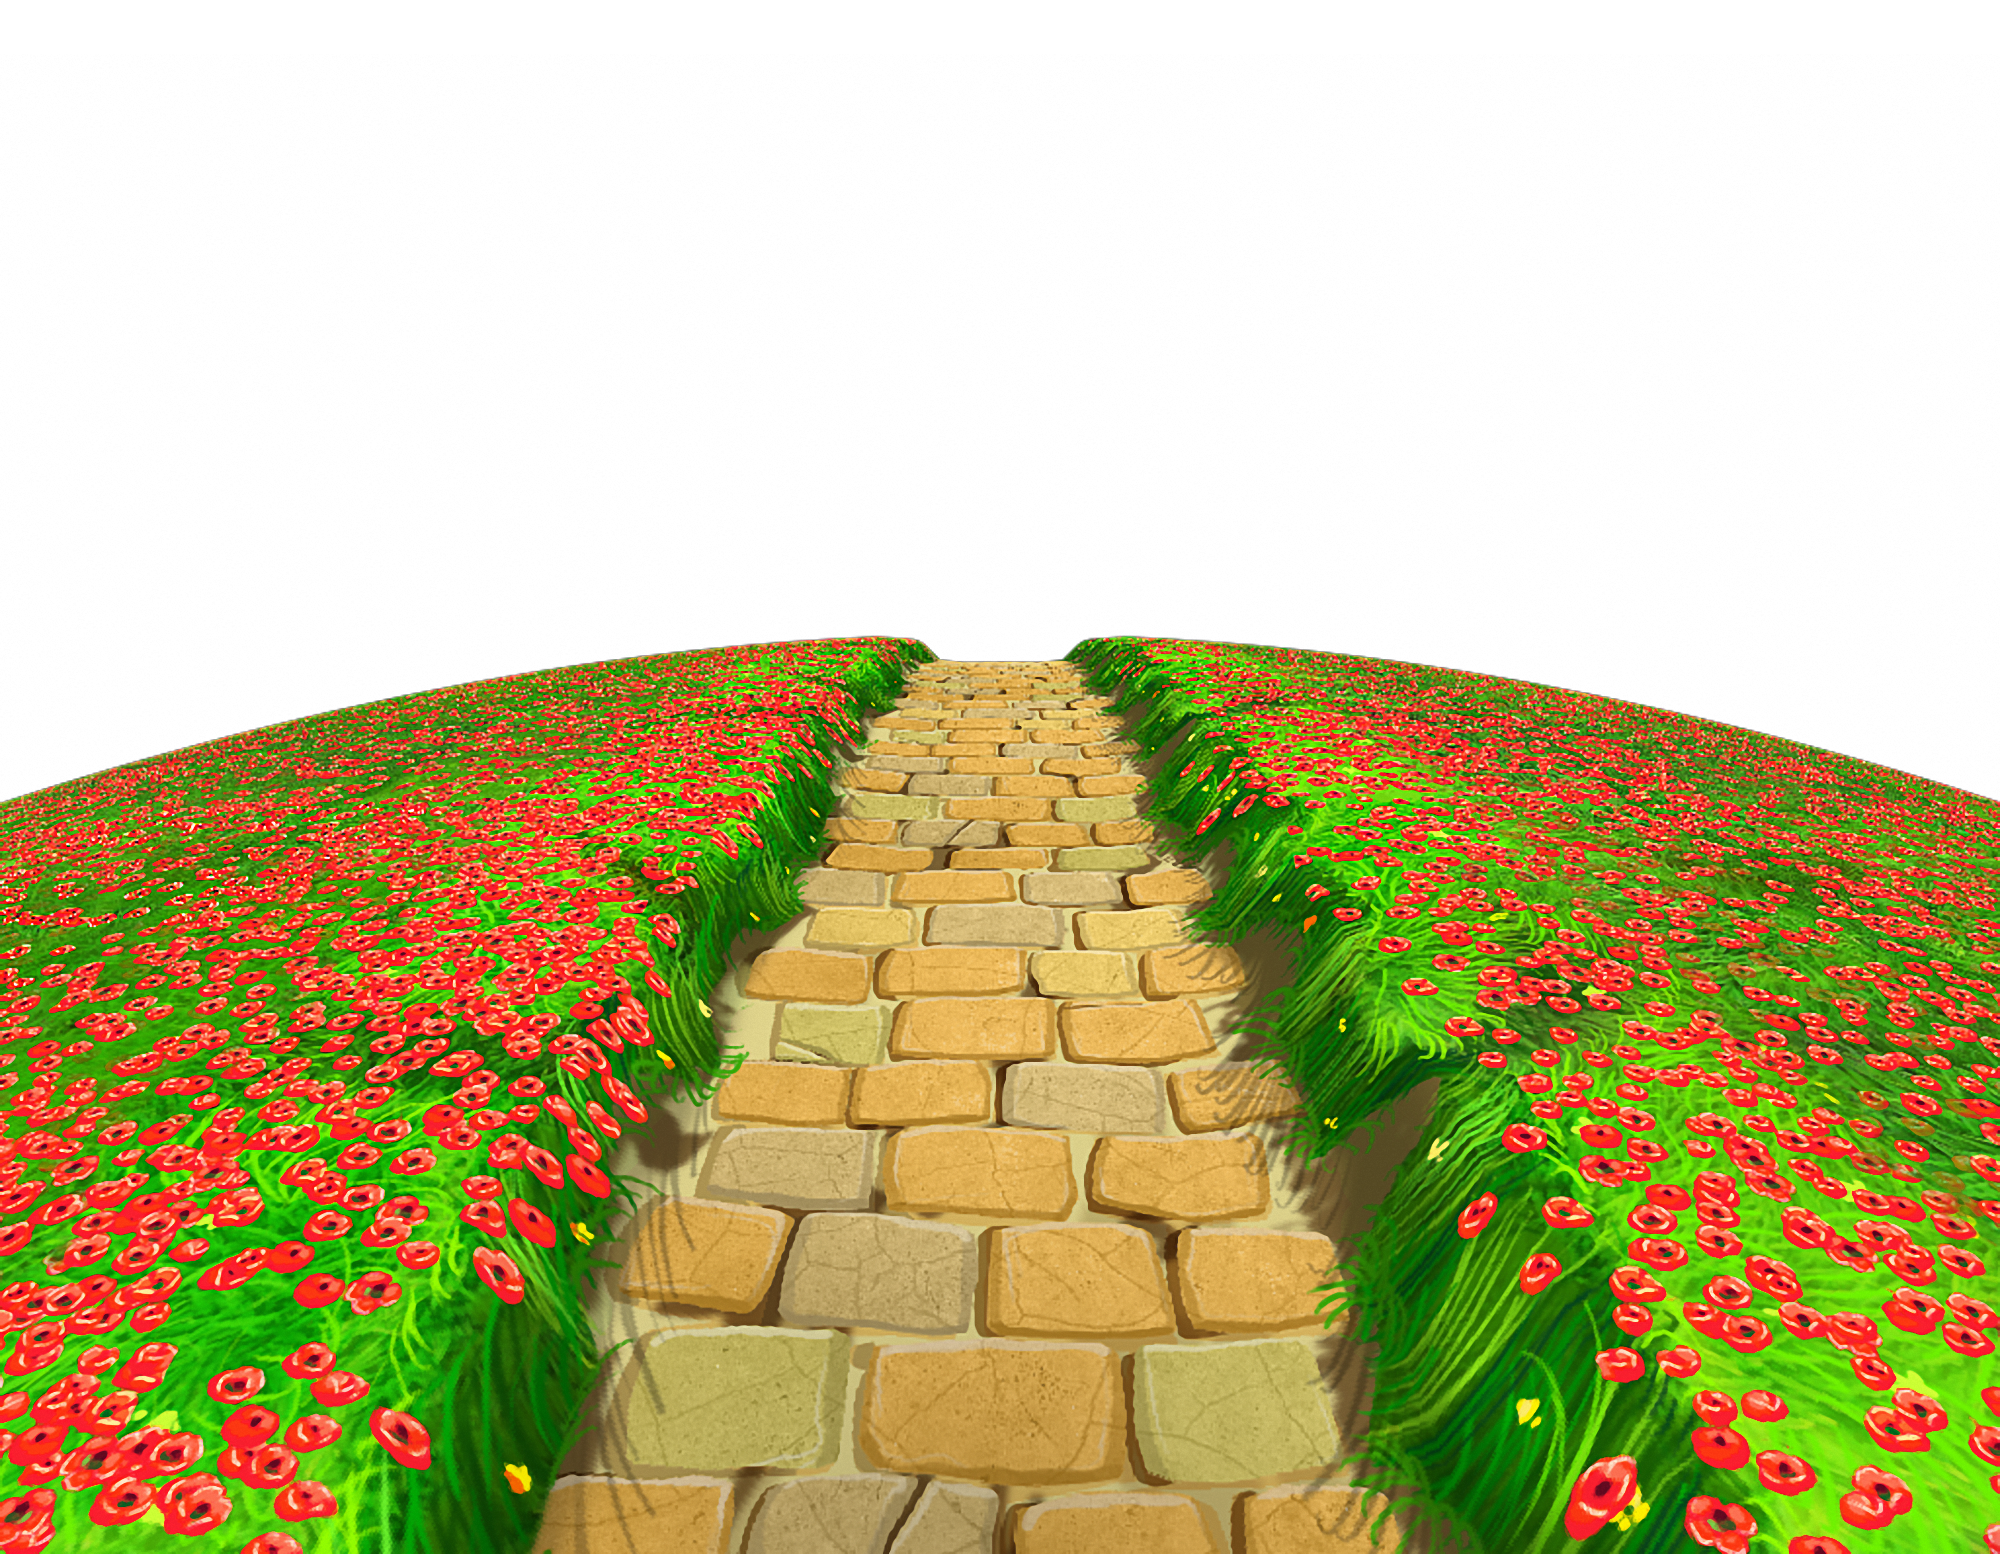 Stone clipart stone altar. Path with flowers ground